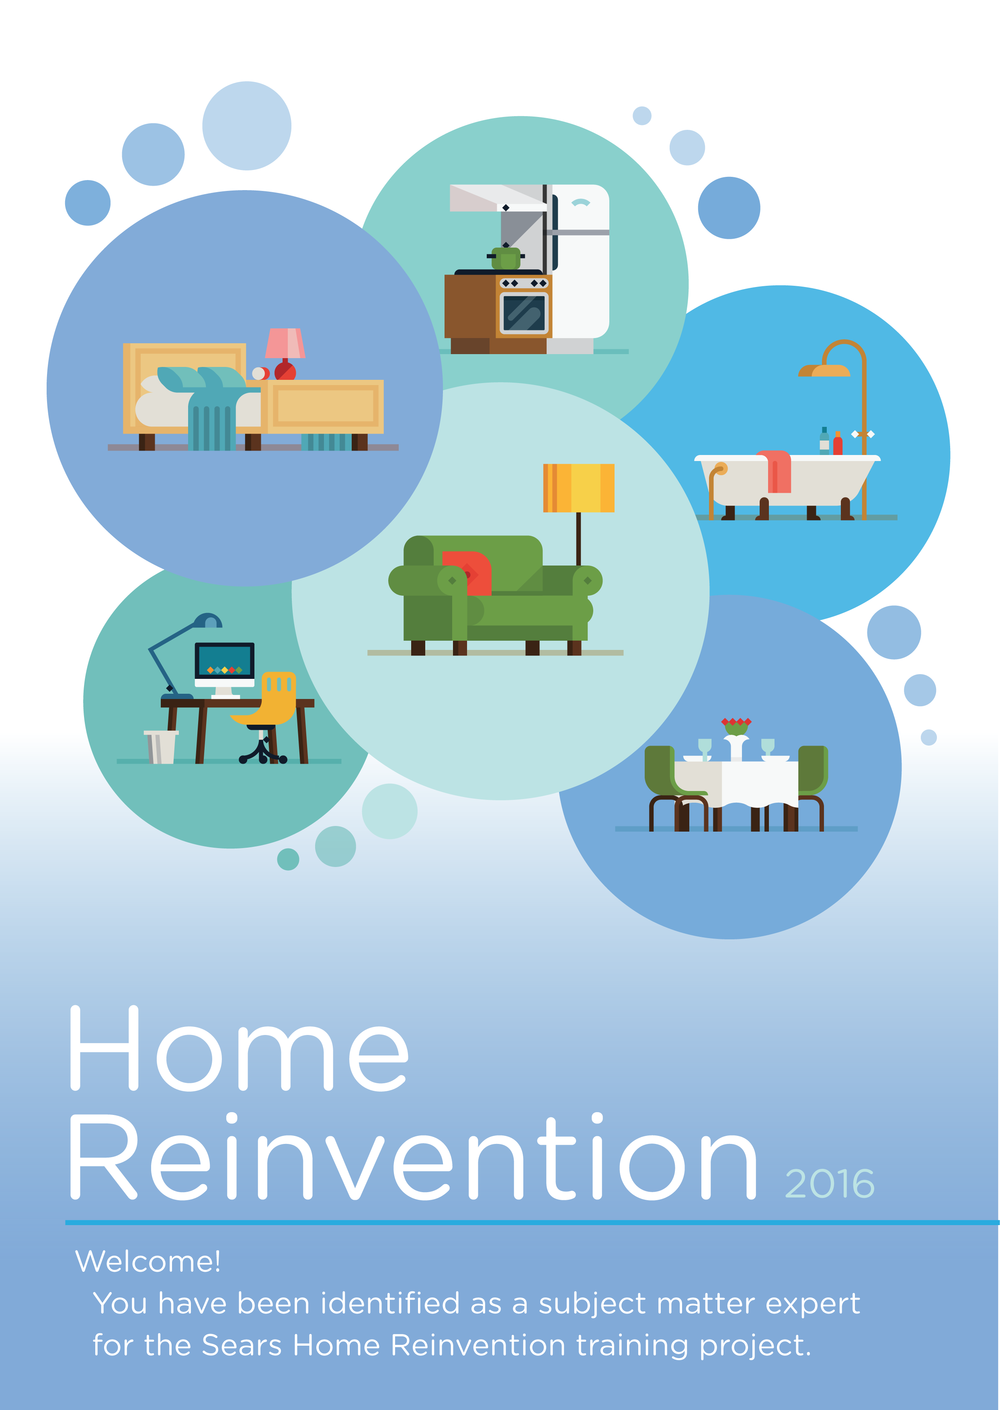 home reinvention_cover_v2.png